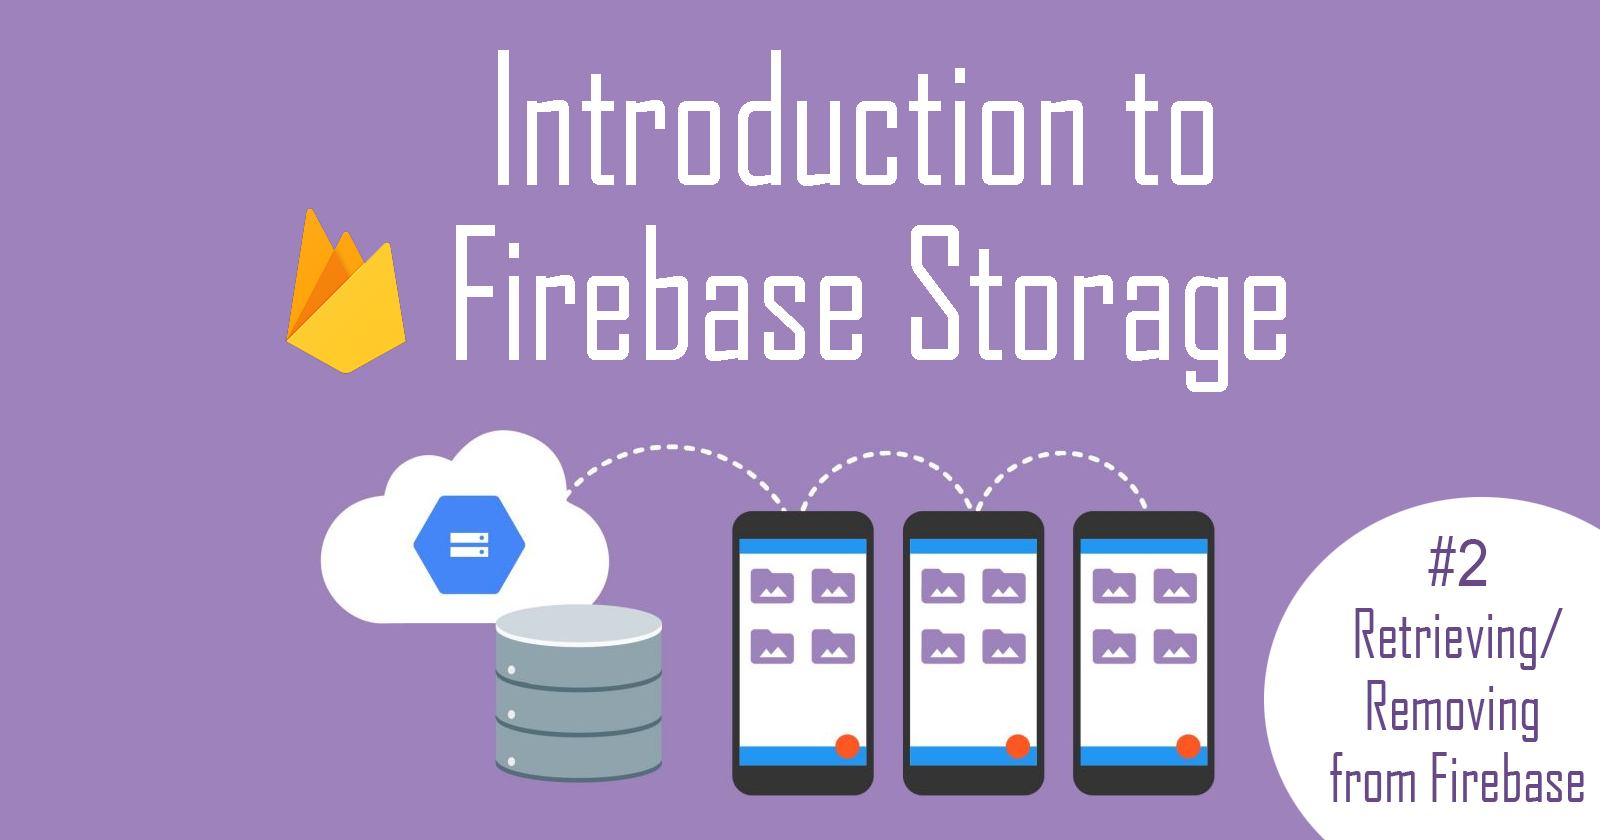 images/introduction-to-firebase-storage-part-2.png